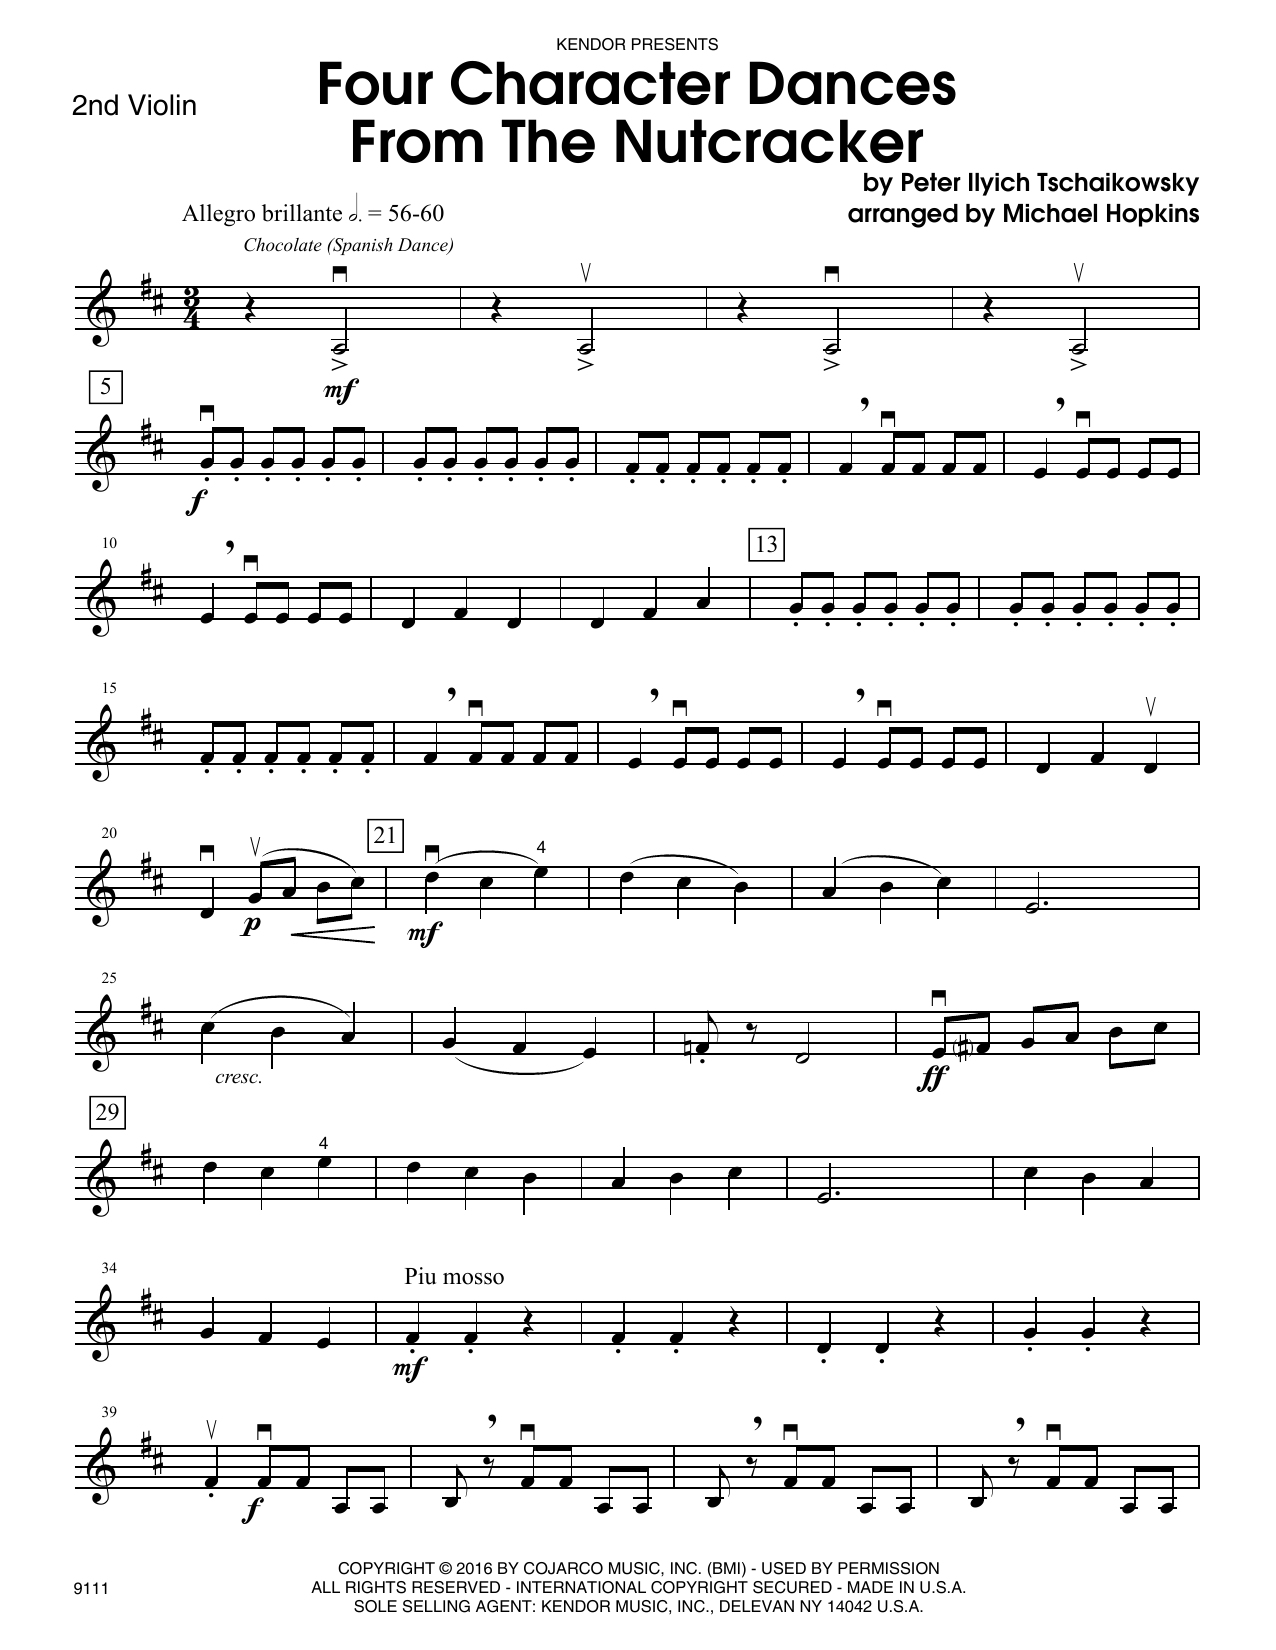 Four Character Dances From The Nutcracker - 2nd Violin Sheet Music